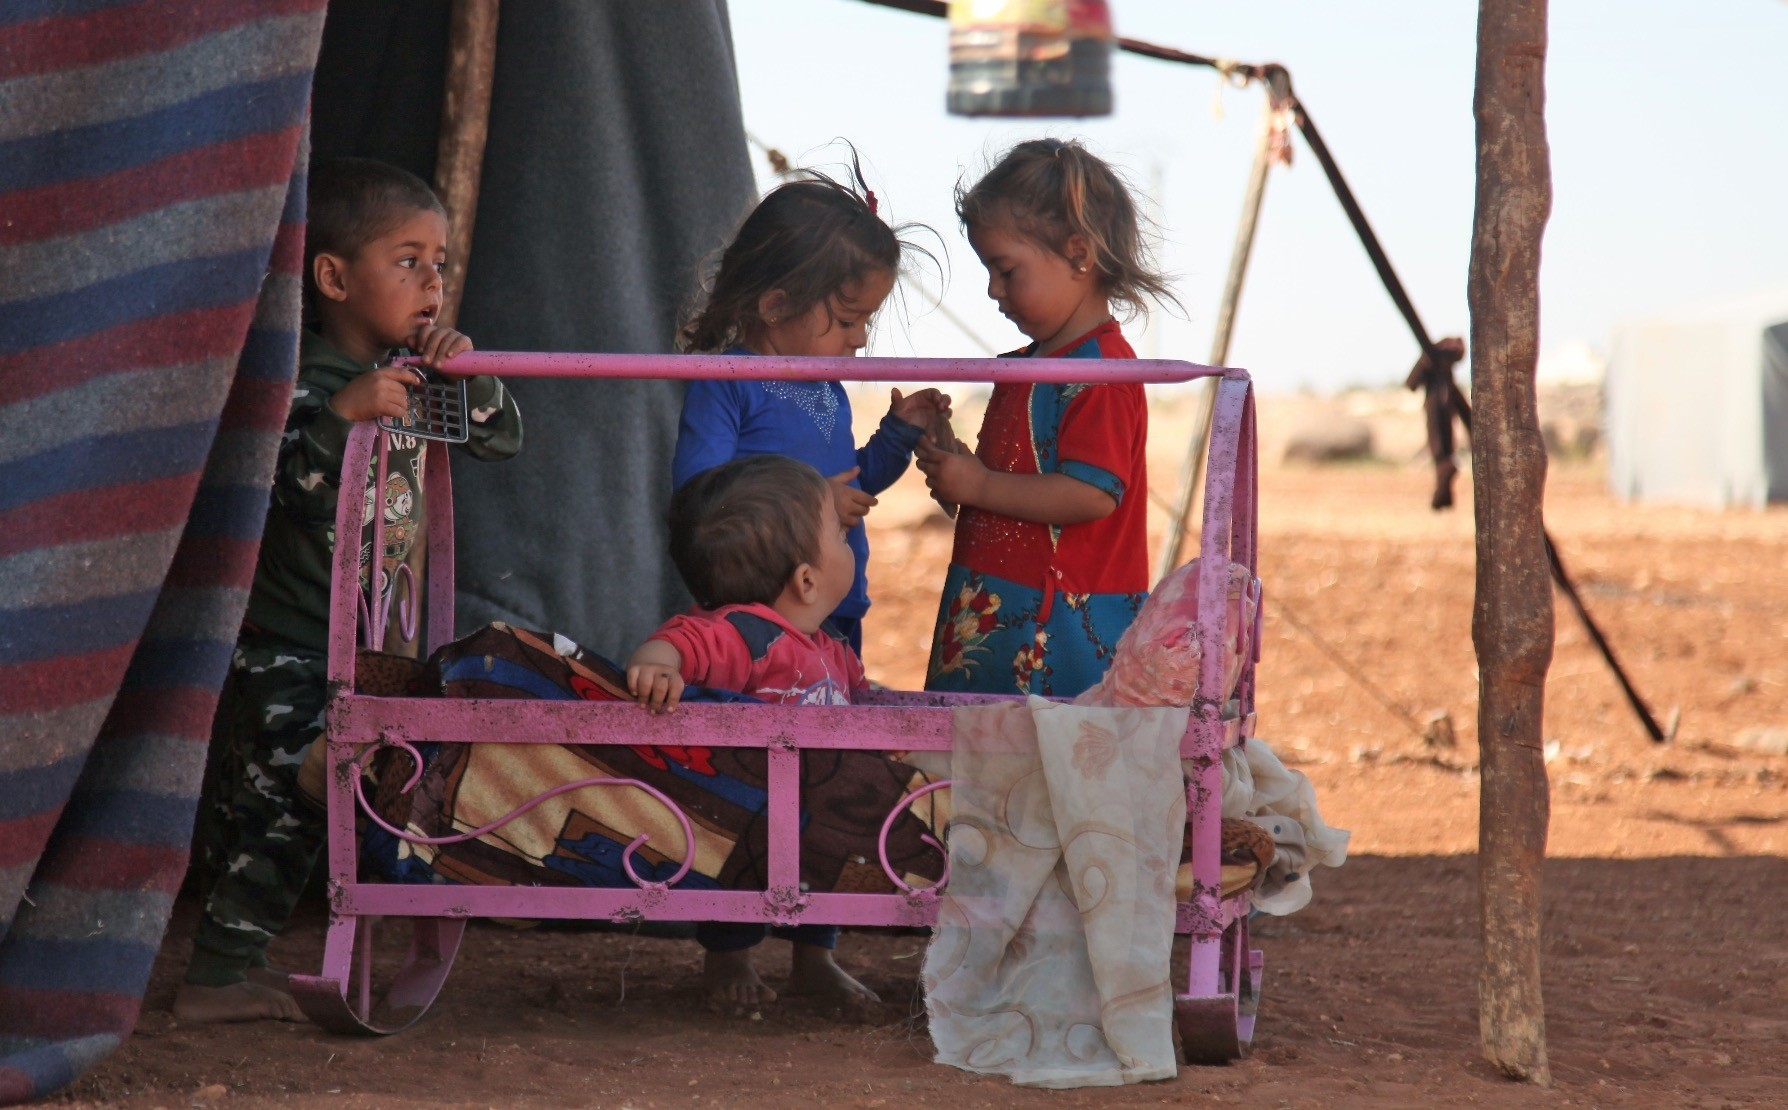 Syrian children play at a makeshift camp for displaced civilians fleeing from advancing Syrian regime forces, close to a Turkish military observation point near the village of Surman in the opposition-held northwestern Idlib province, Syria, Sept.5.